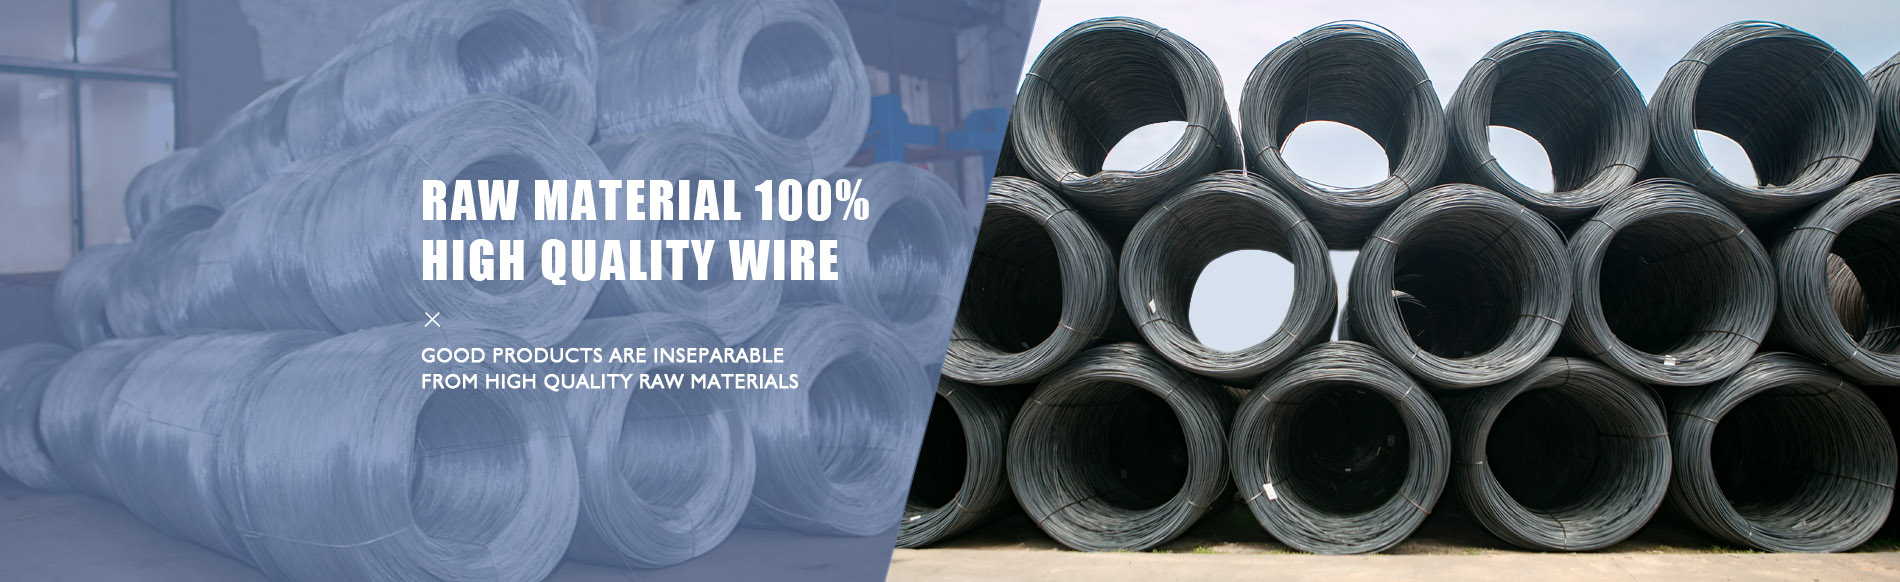 Stranded Steel Wire, Hot Dipped Galvanized Steel Wire, Phosphated steel wire